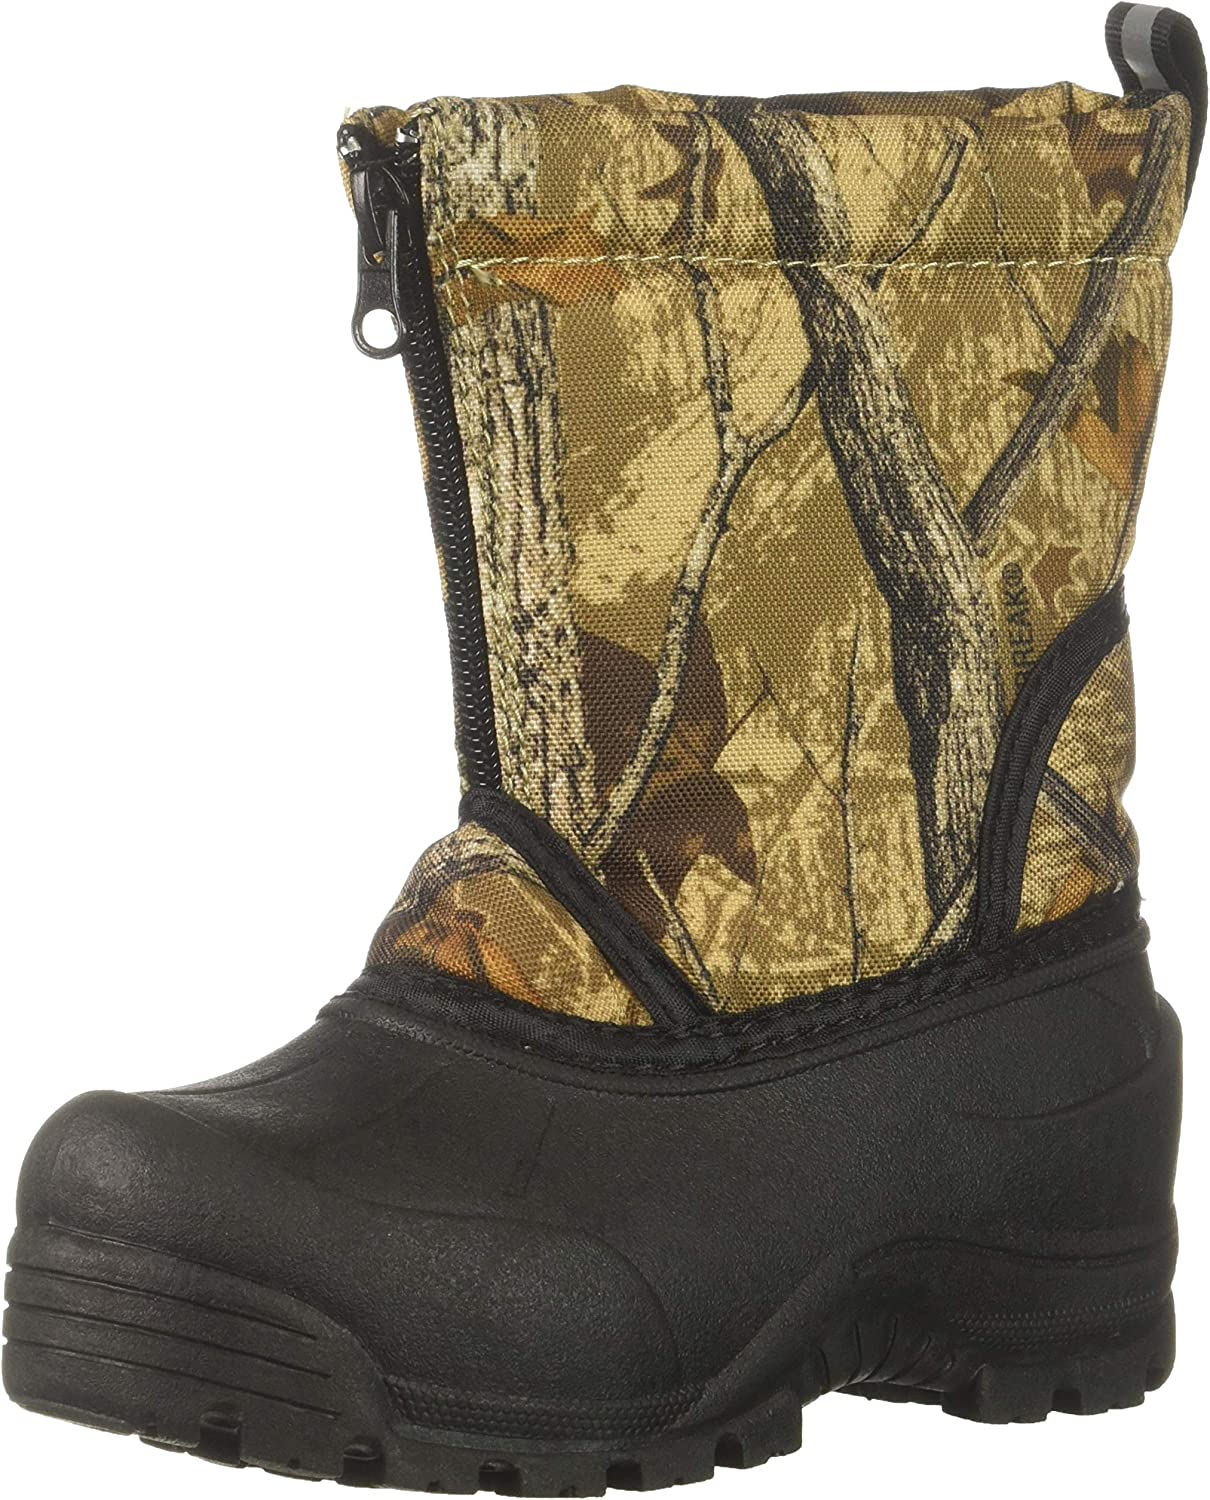 Manufacturer direct delivery Northside Icicle Boot Snow New arrival